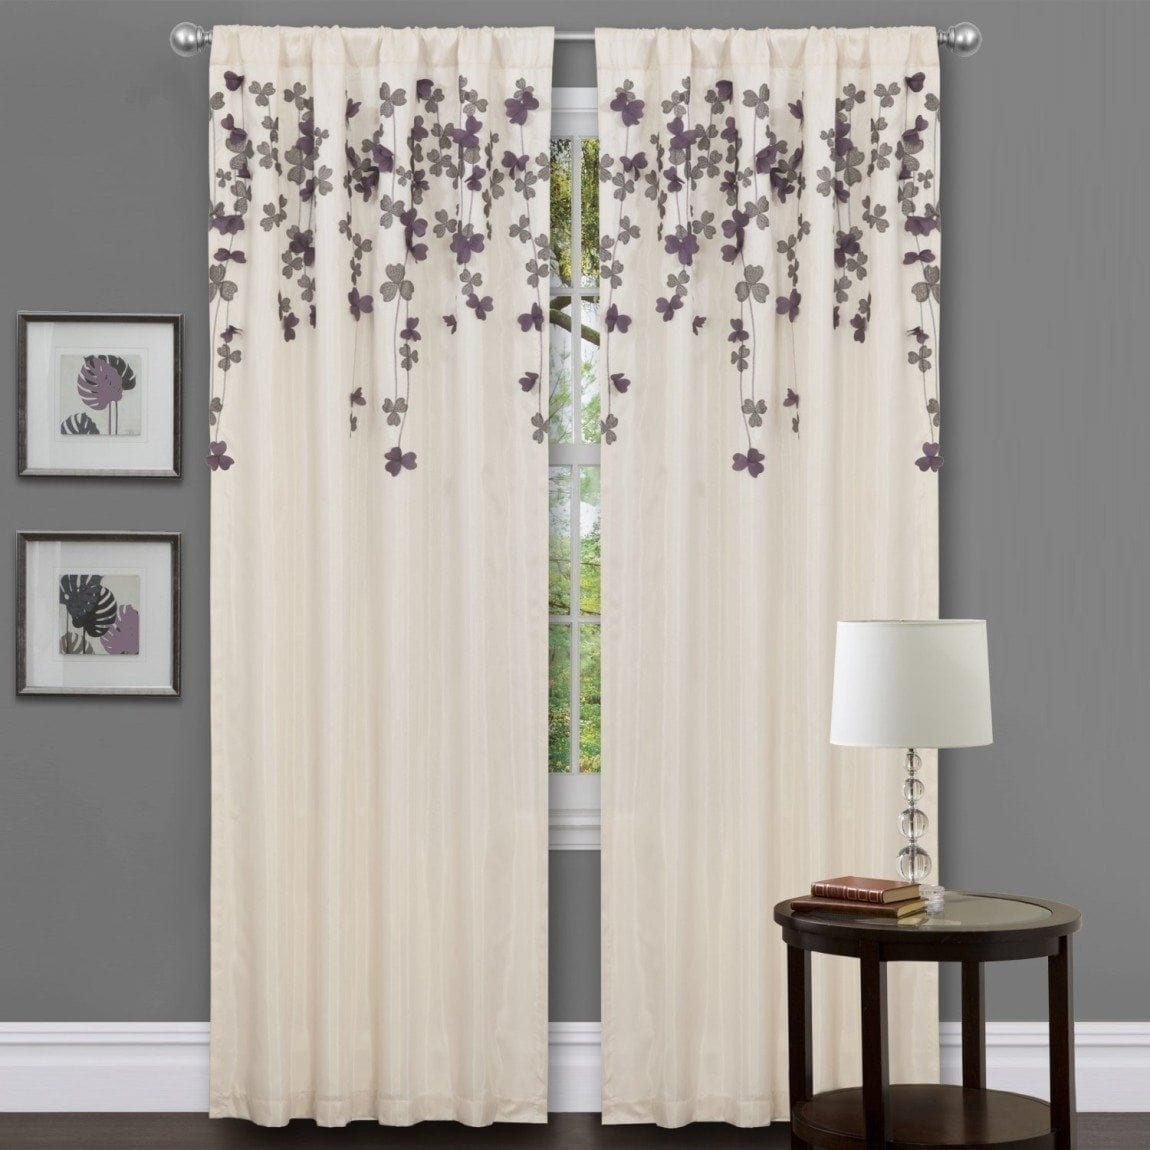 Home Drapes Bargain Home Decor Drapes And Curtains Under $60  Arts And Classy